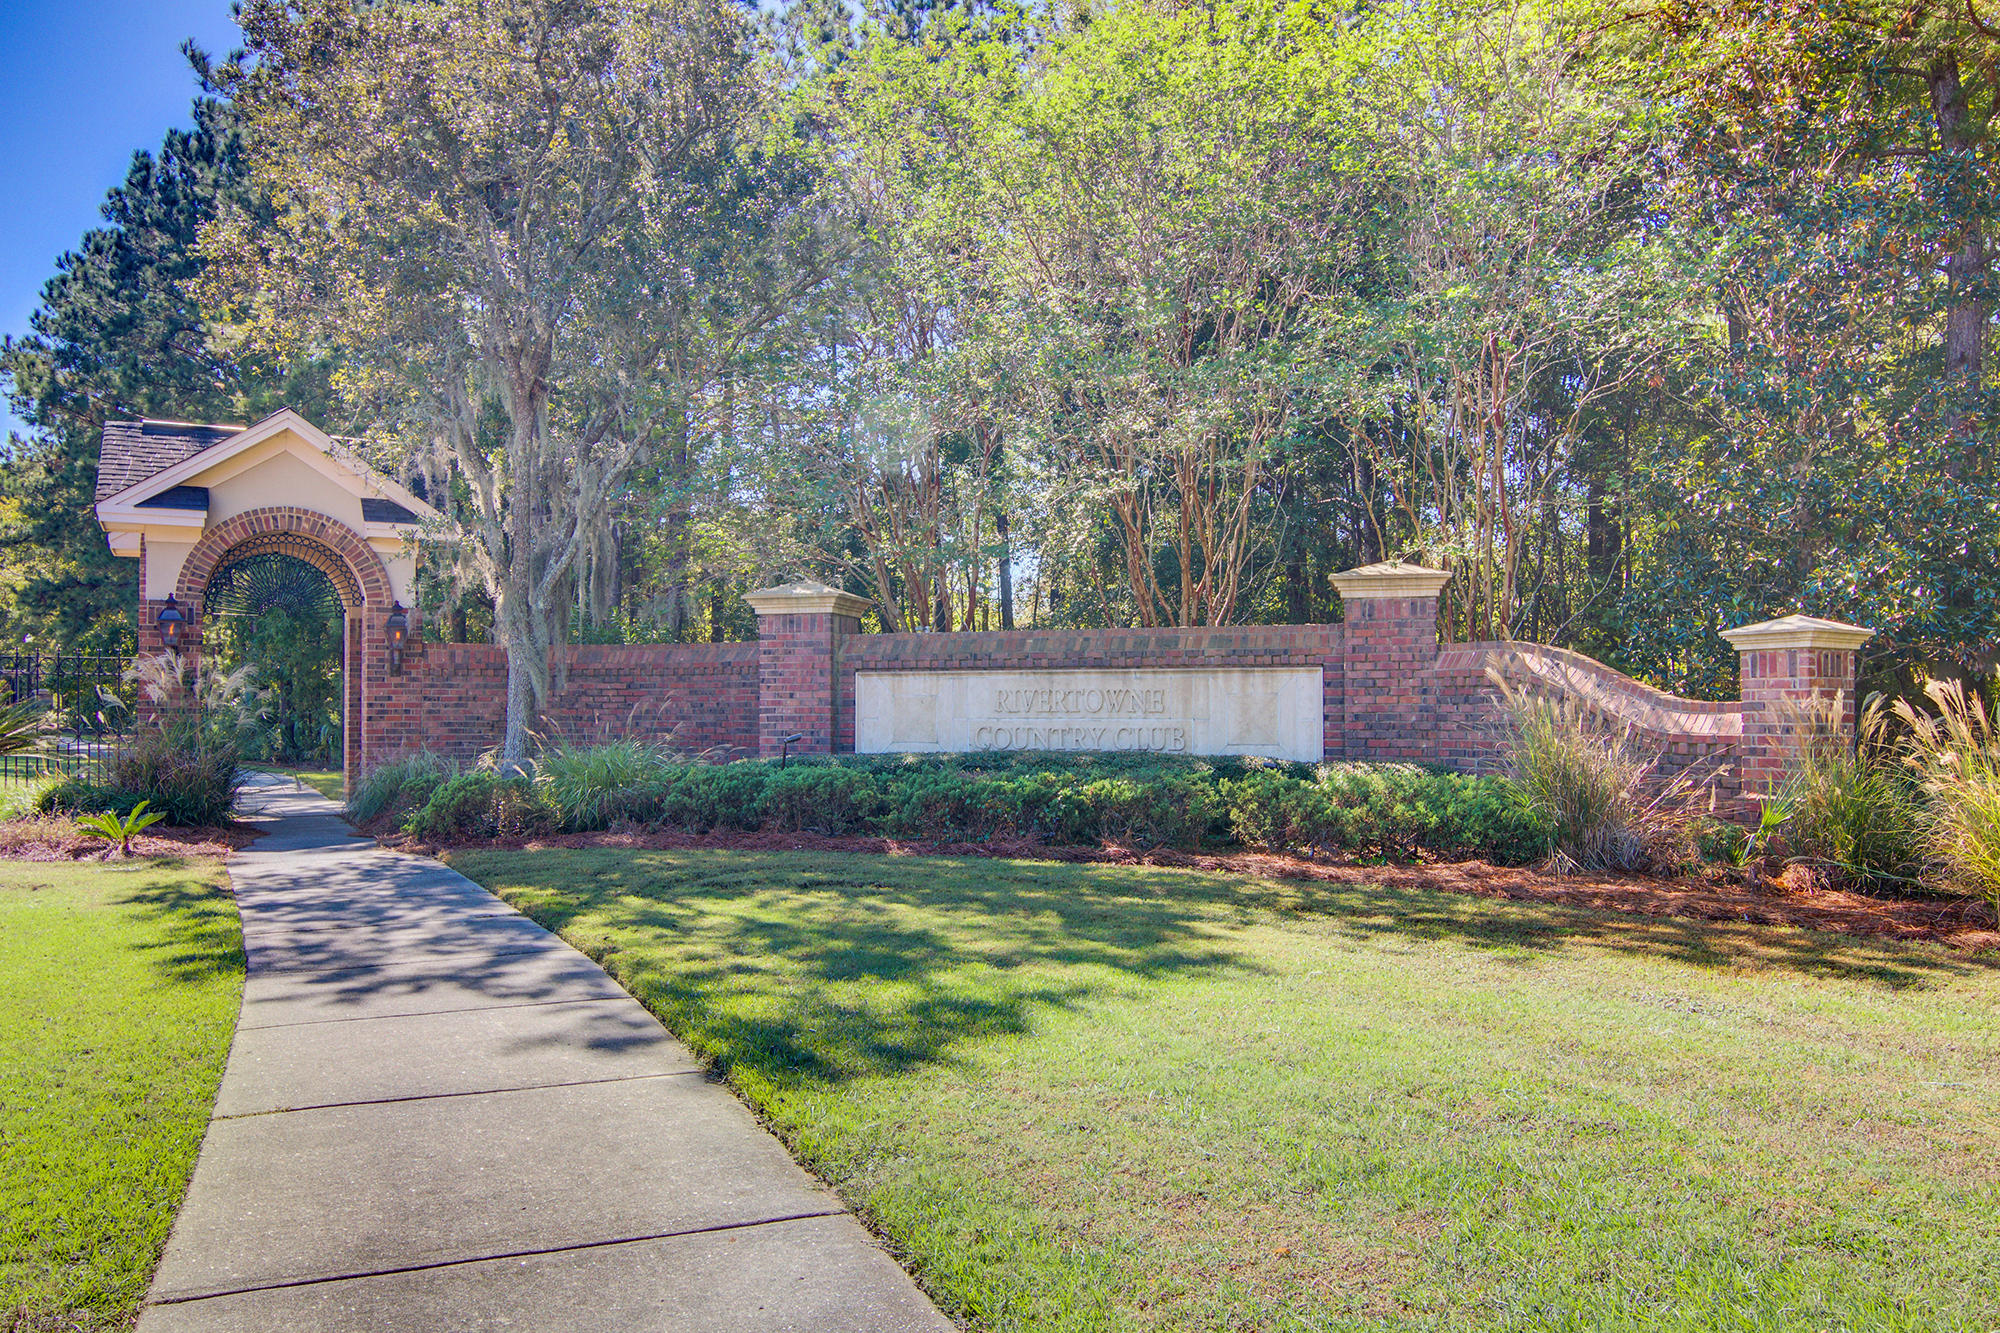 Rivertowne Country Club Homes For Sale - 1629 Rivertowne Country Club, Mount Pleasant, SC - 2